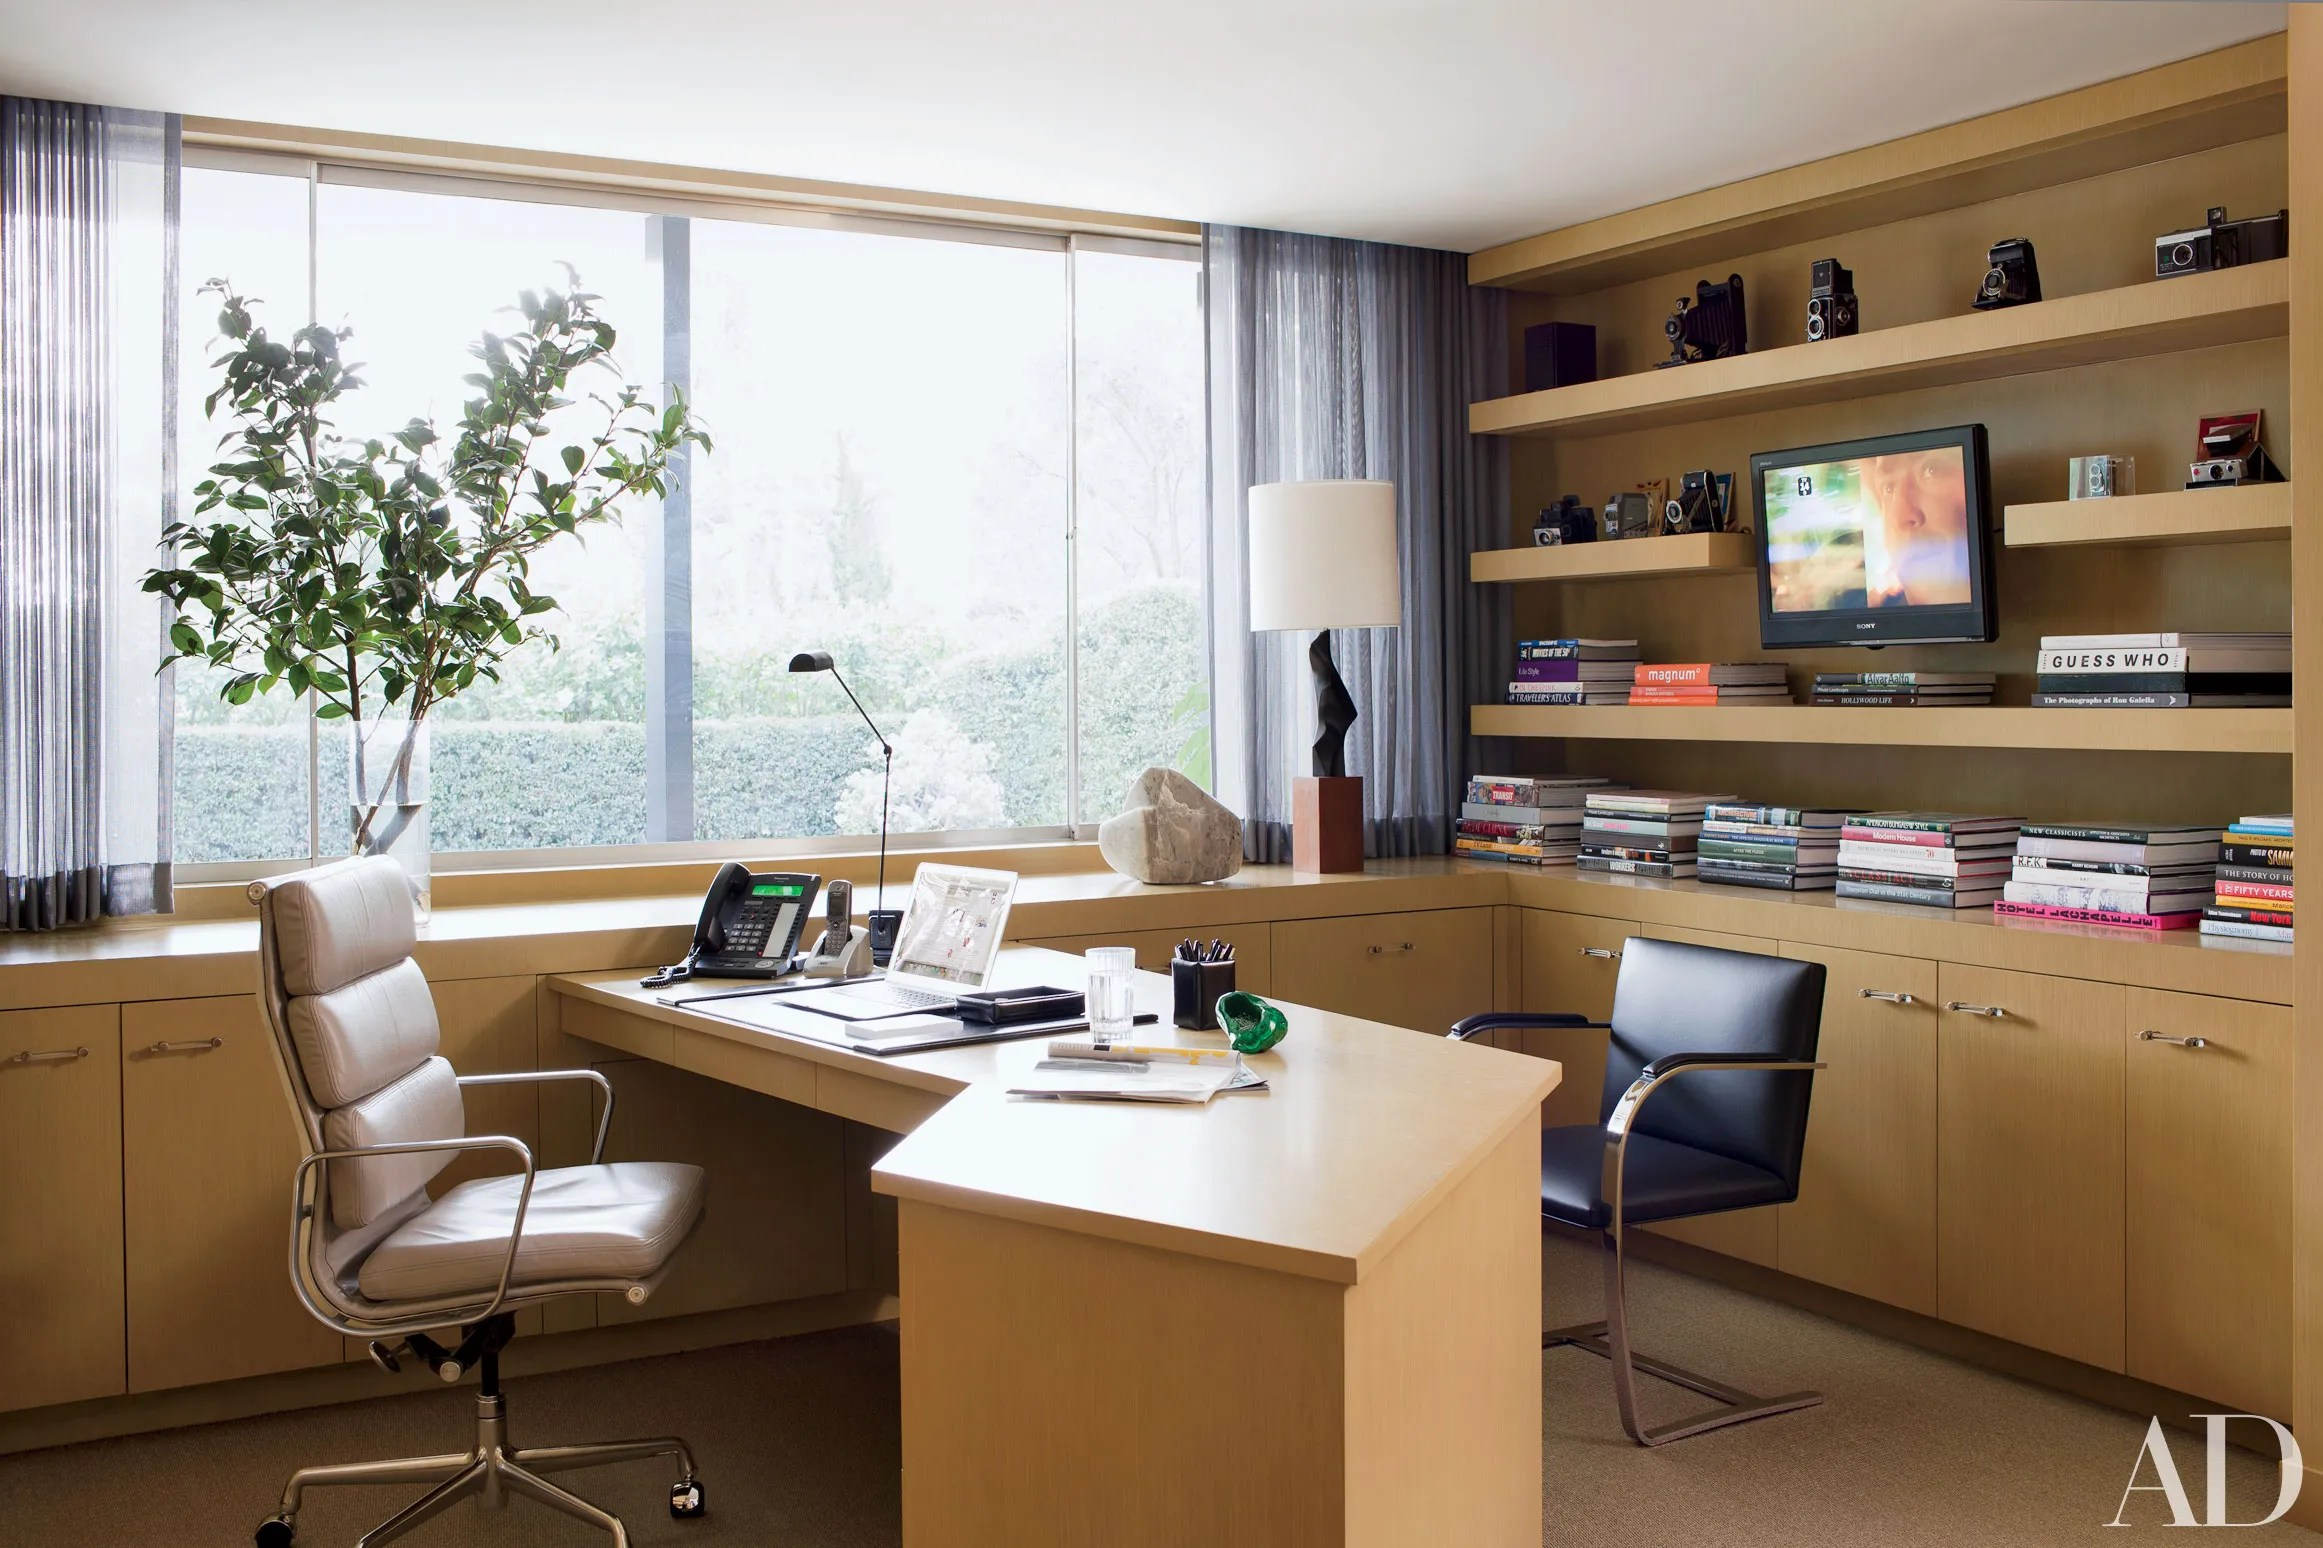 Eames Chairs Reproduction 23 Home Office Design Ideas That Will Inspire Productivity